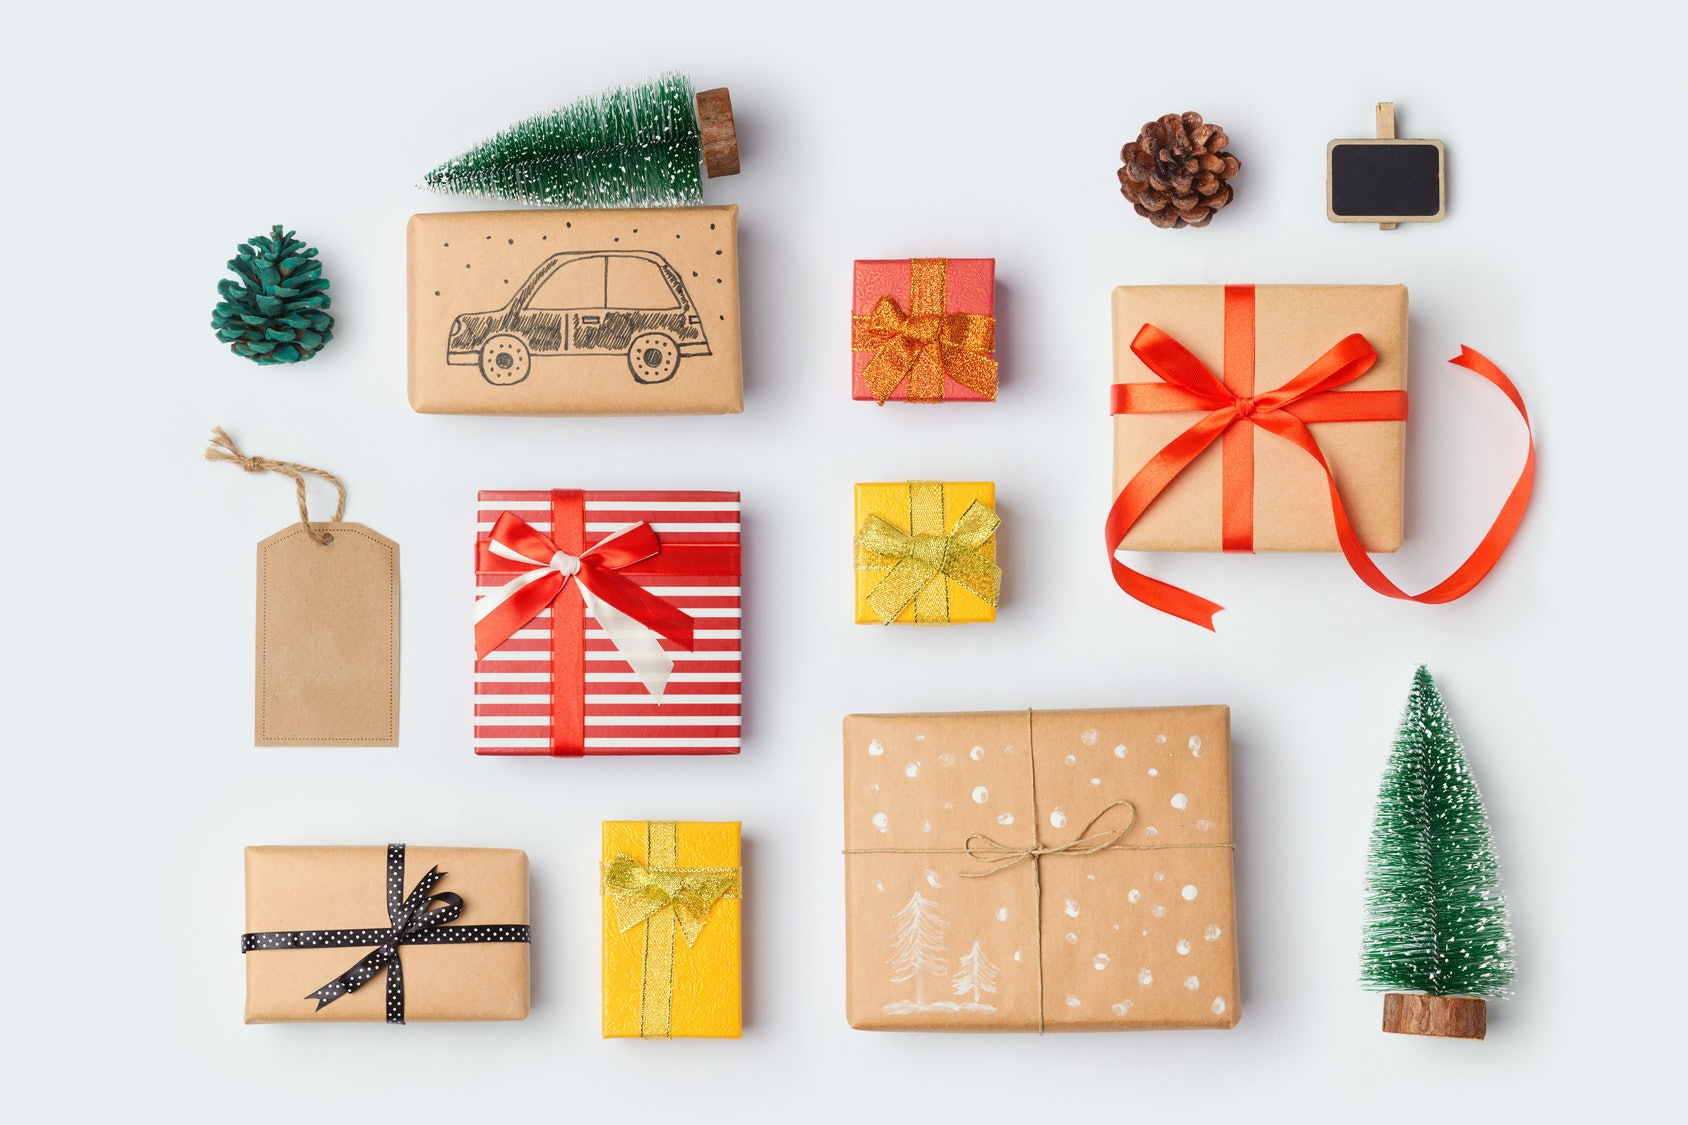 Unique Christmas Gifts For Her.24 Unique 2016 Holiday Gift Ideas For Everyone On Your List